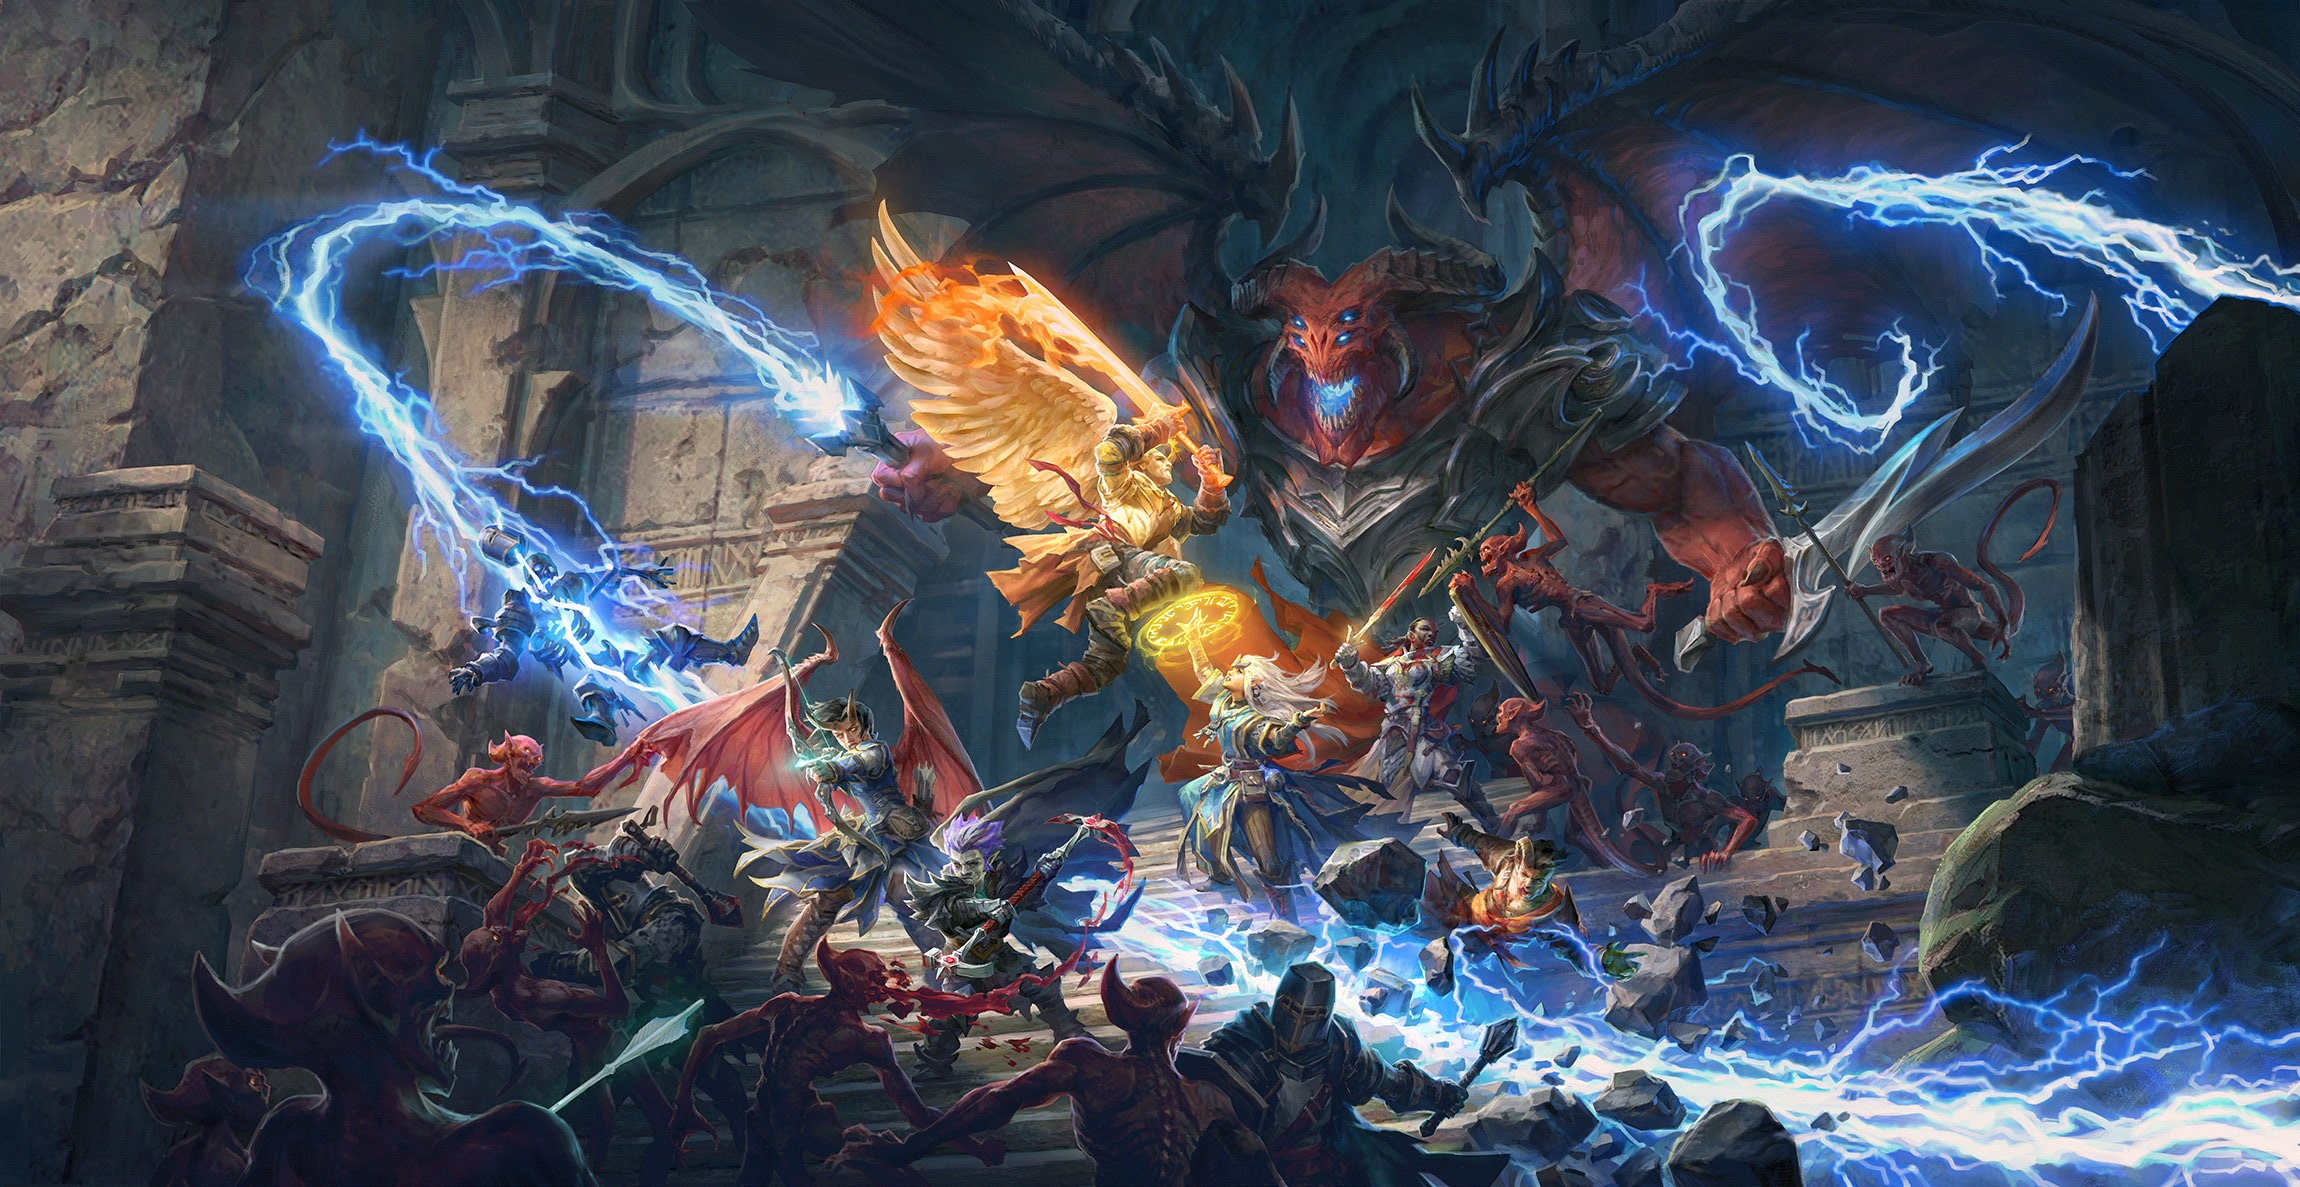 Pathfinder:Wrath of the Righteous keyart